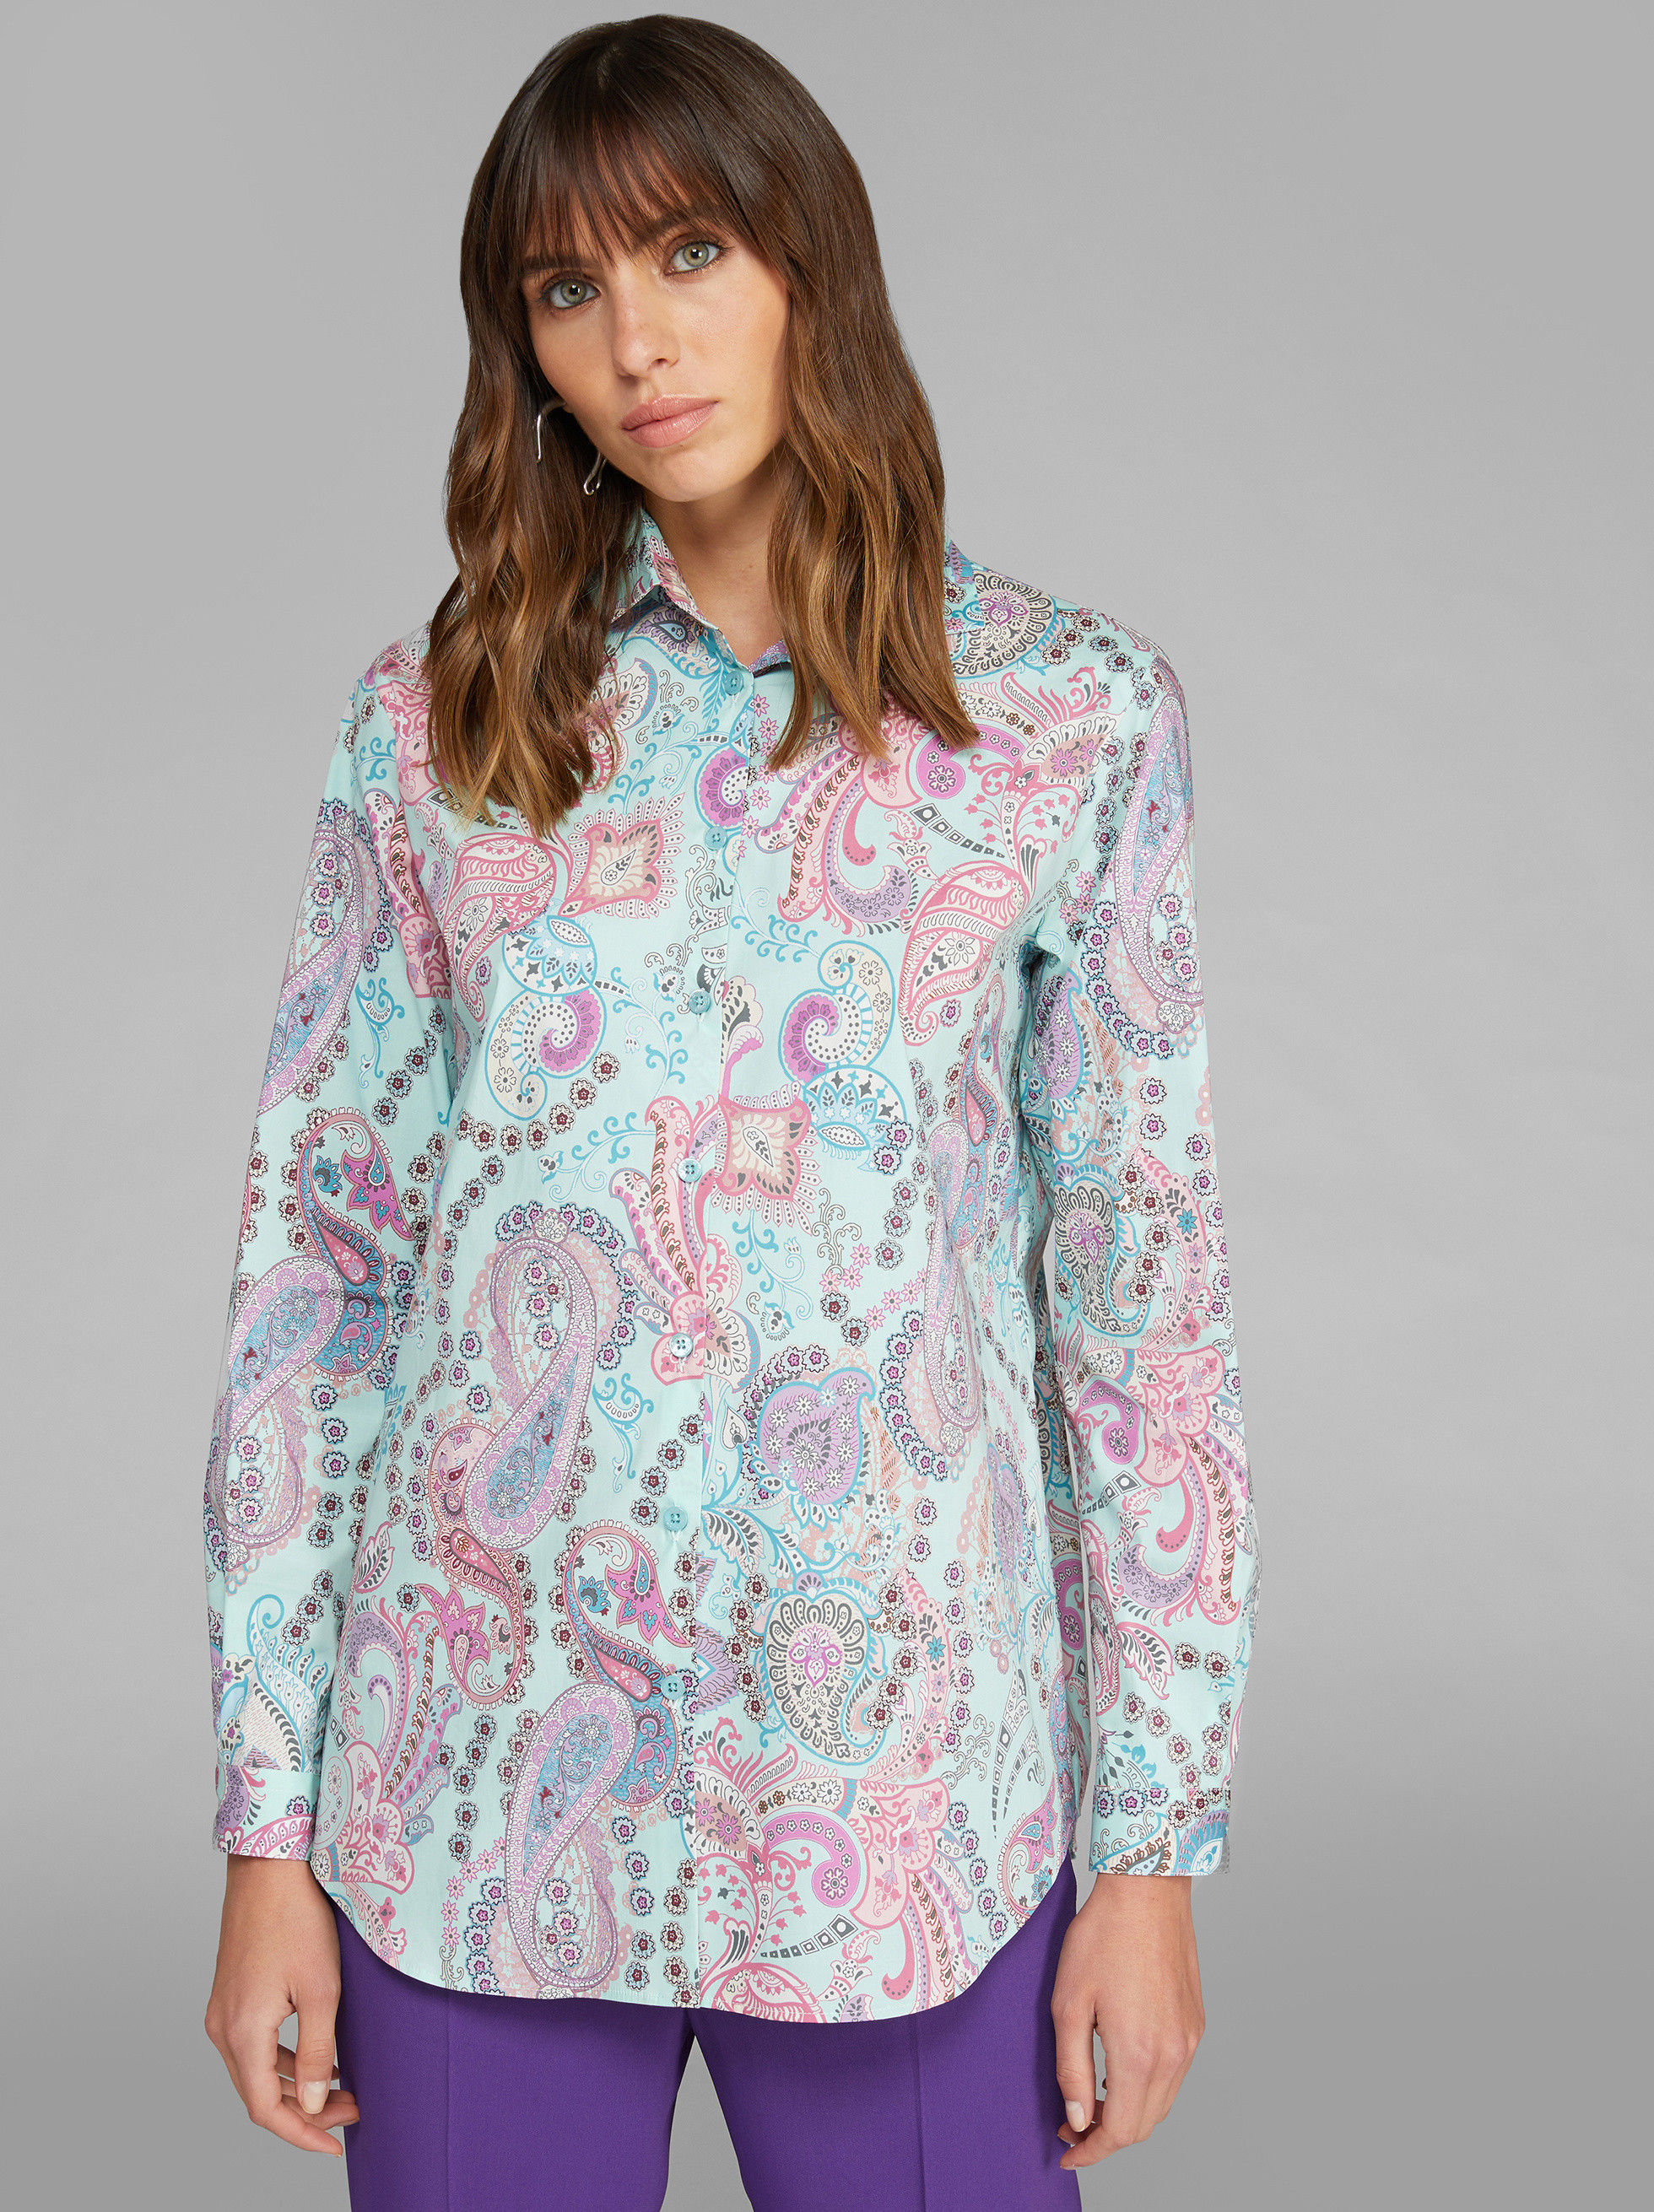 SHIRT WITH PAISLEY DESIGNS